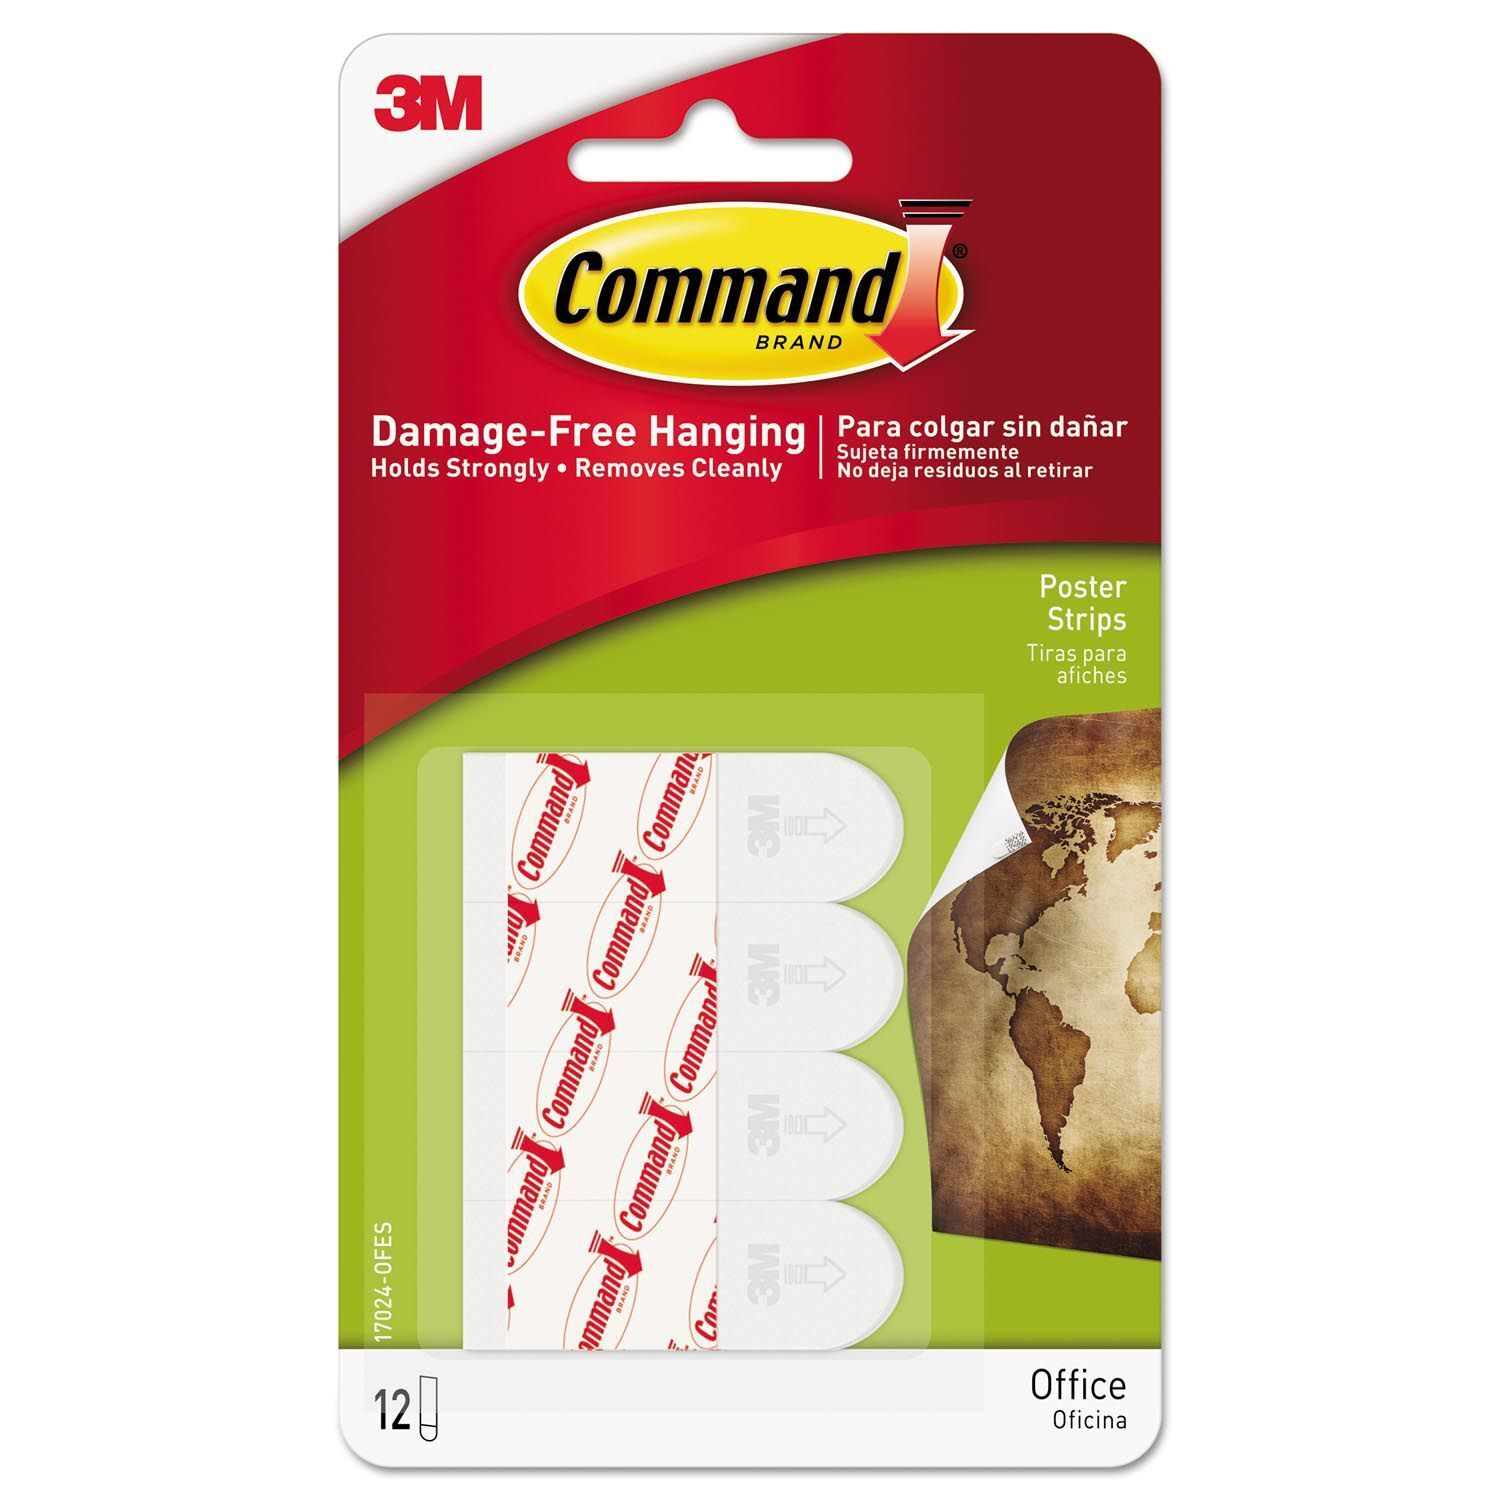 3M Scotch Command Poster Adhesive Strip Value Pack White 48